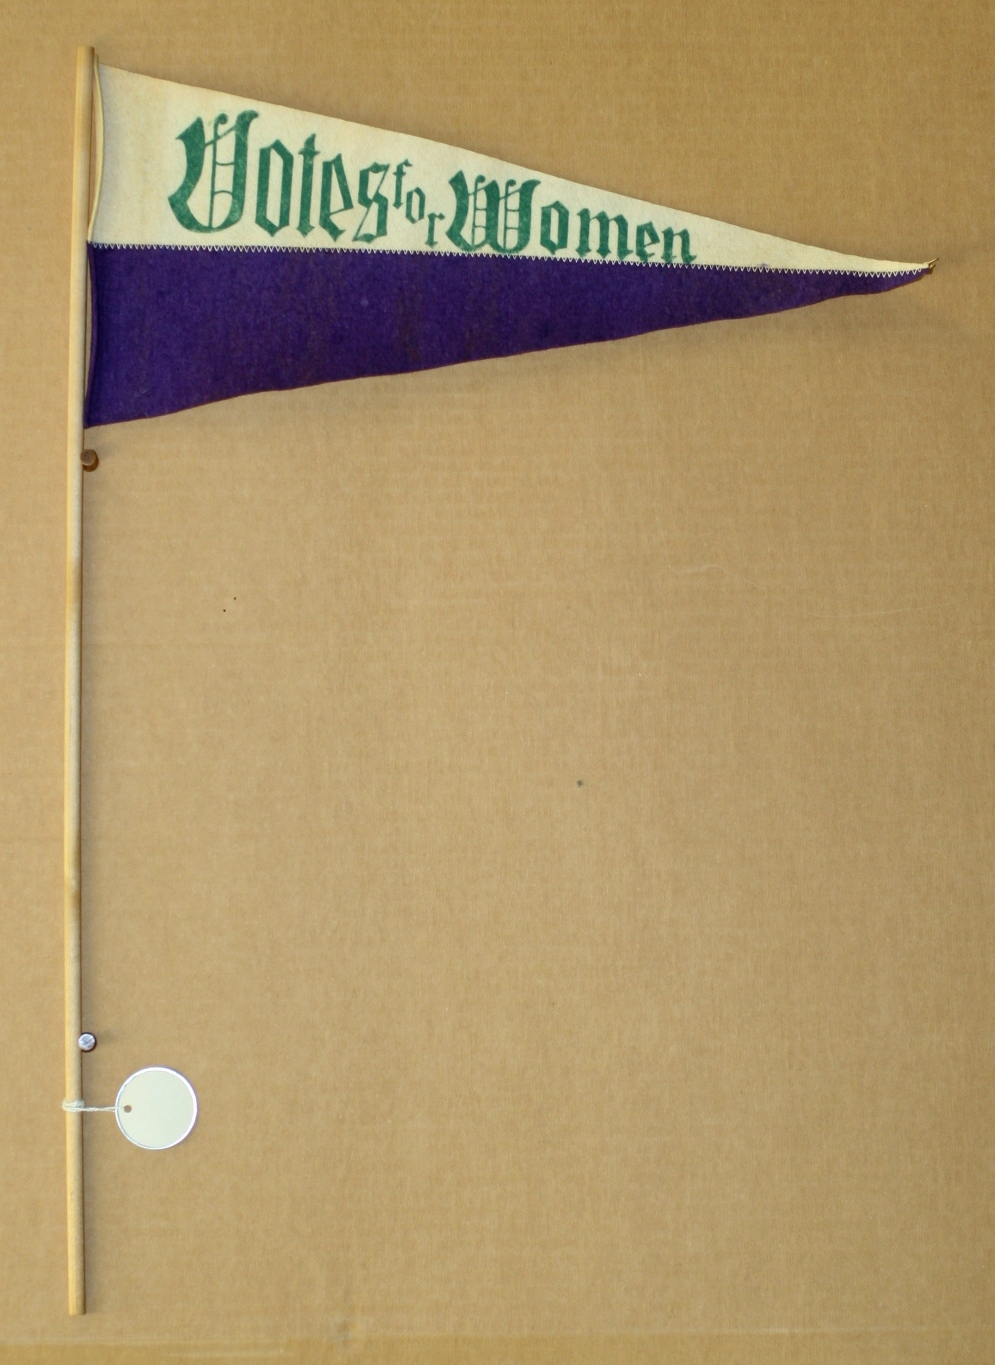 Pennant Votes for Women